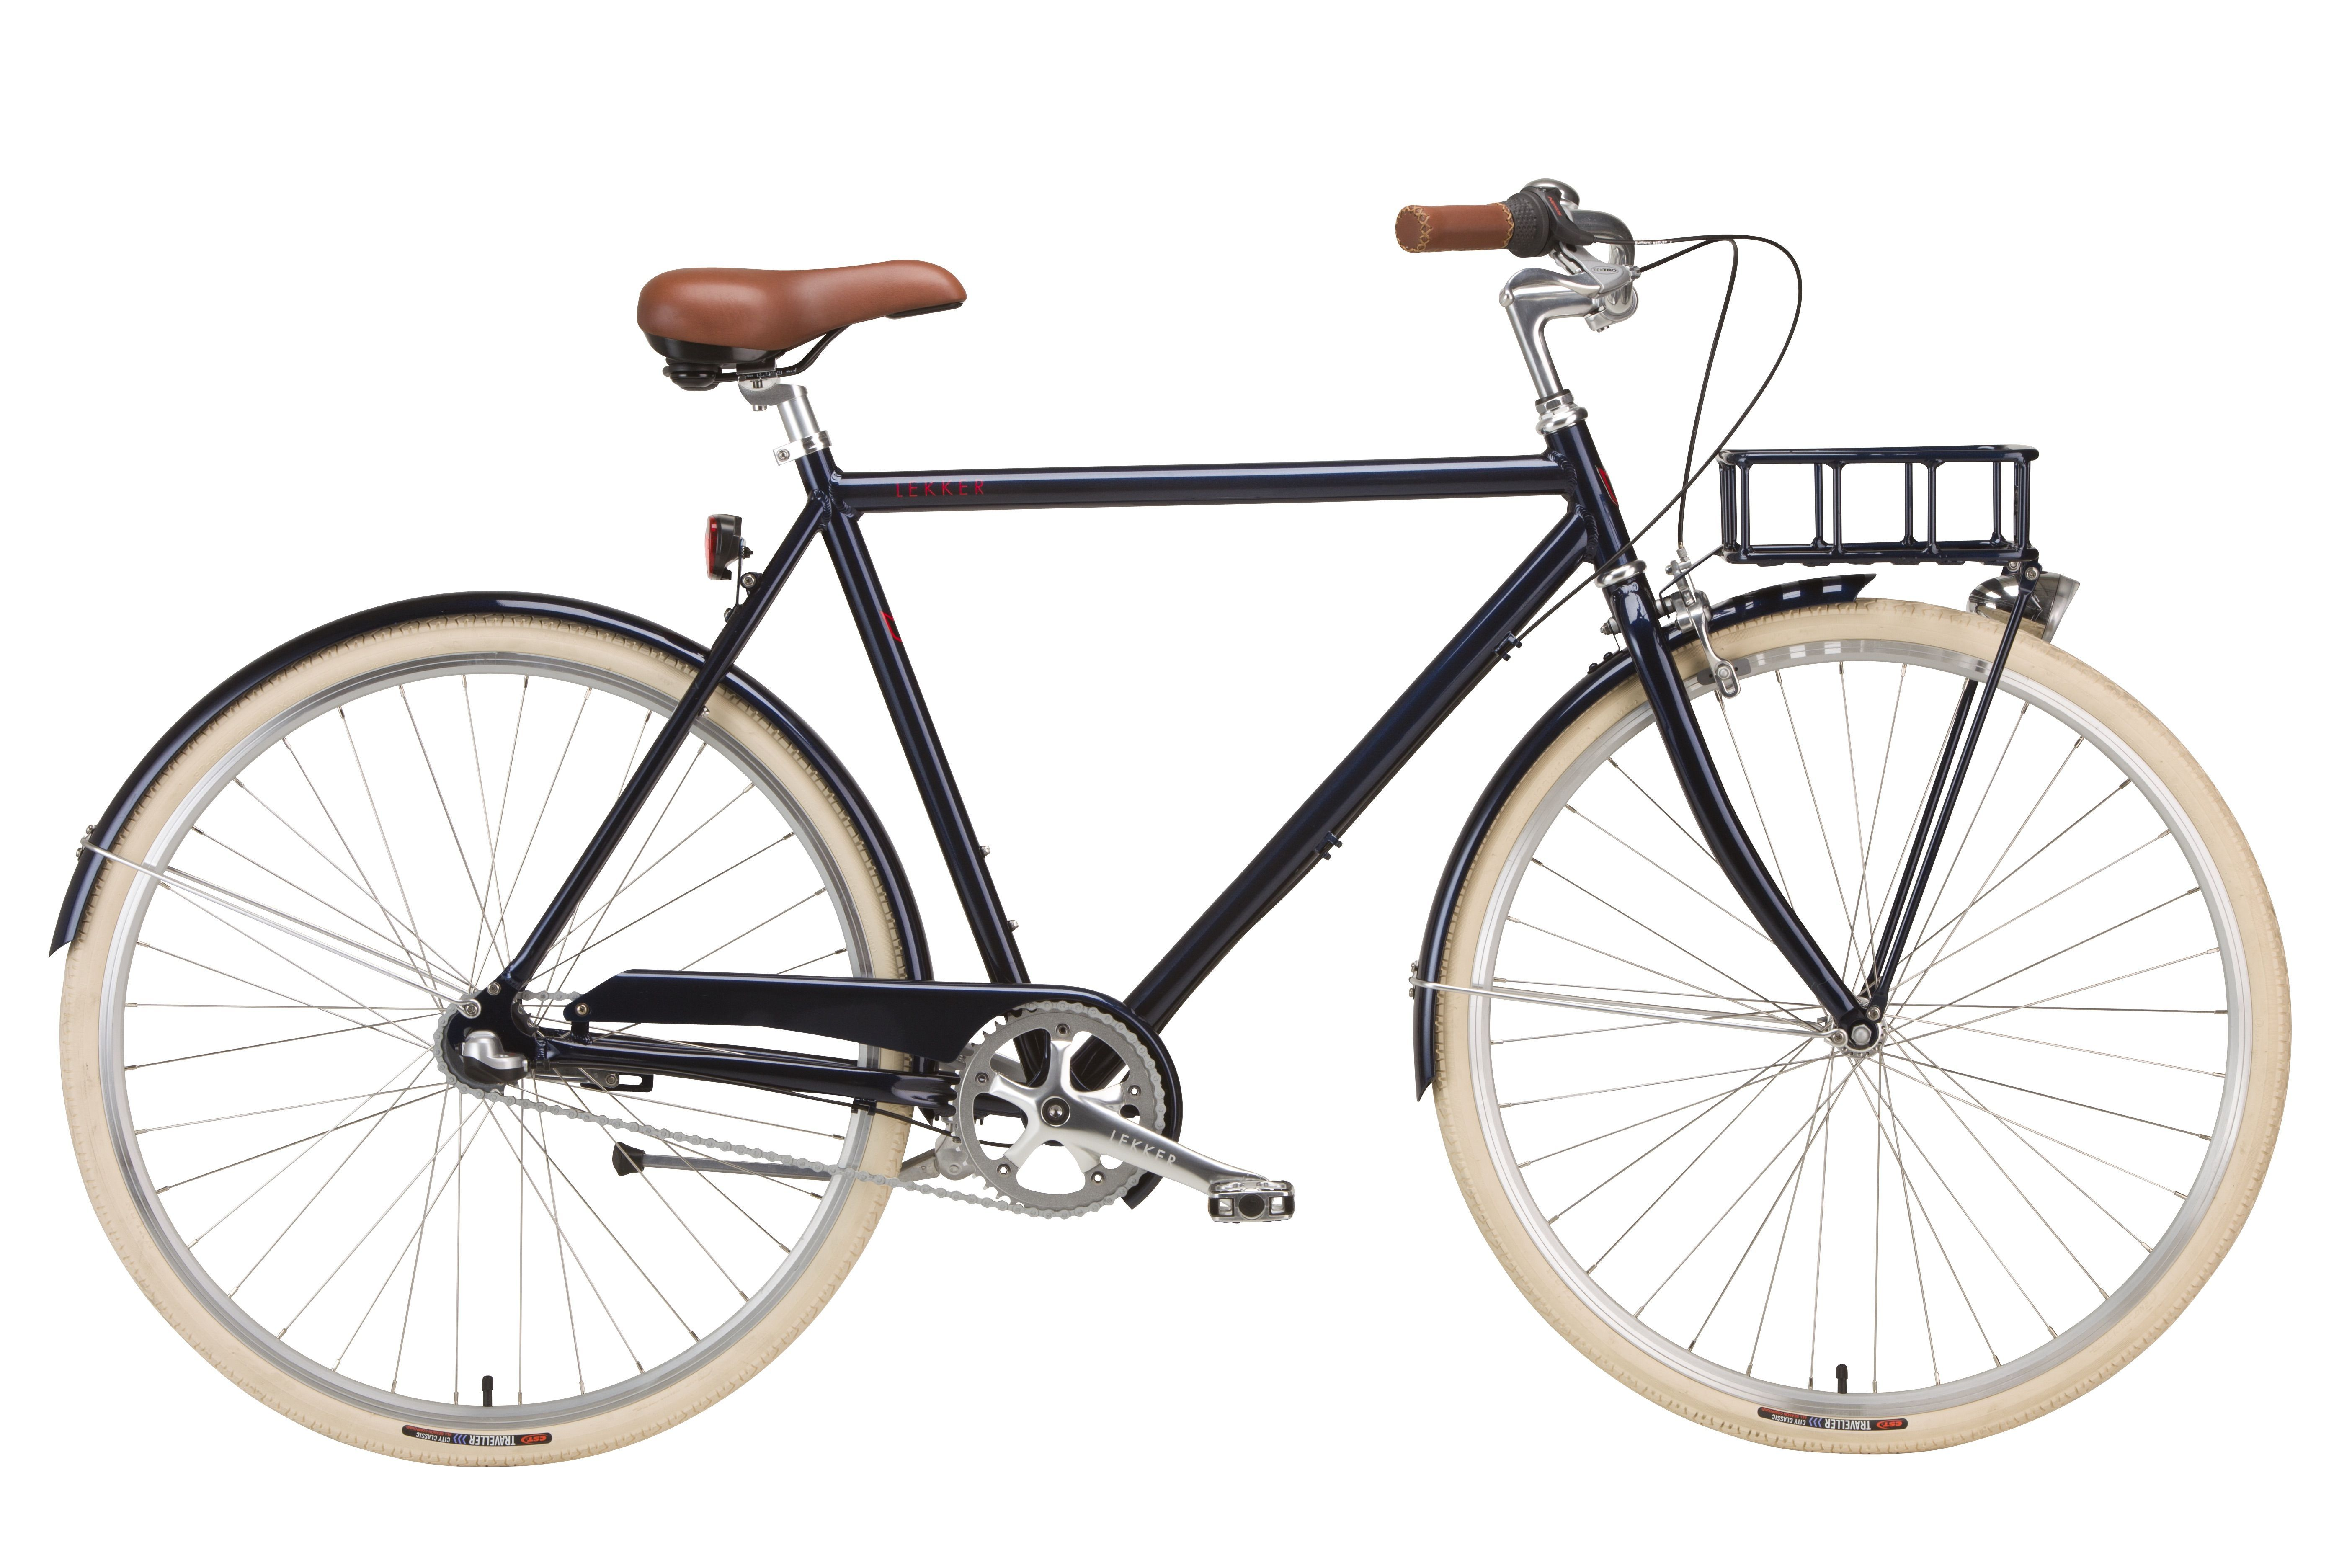 Comfy Enjoyable Striking Design And 100 Aluminium Premium Dutch Mens Bikes Mixung Performance With Ea Vintage Bikes Lightweight Bicycle Dutch Style Bicycle